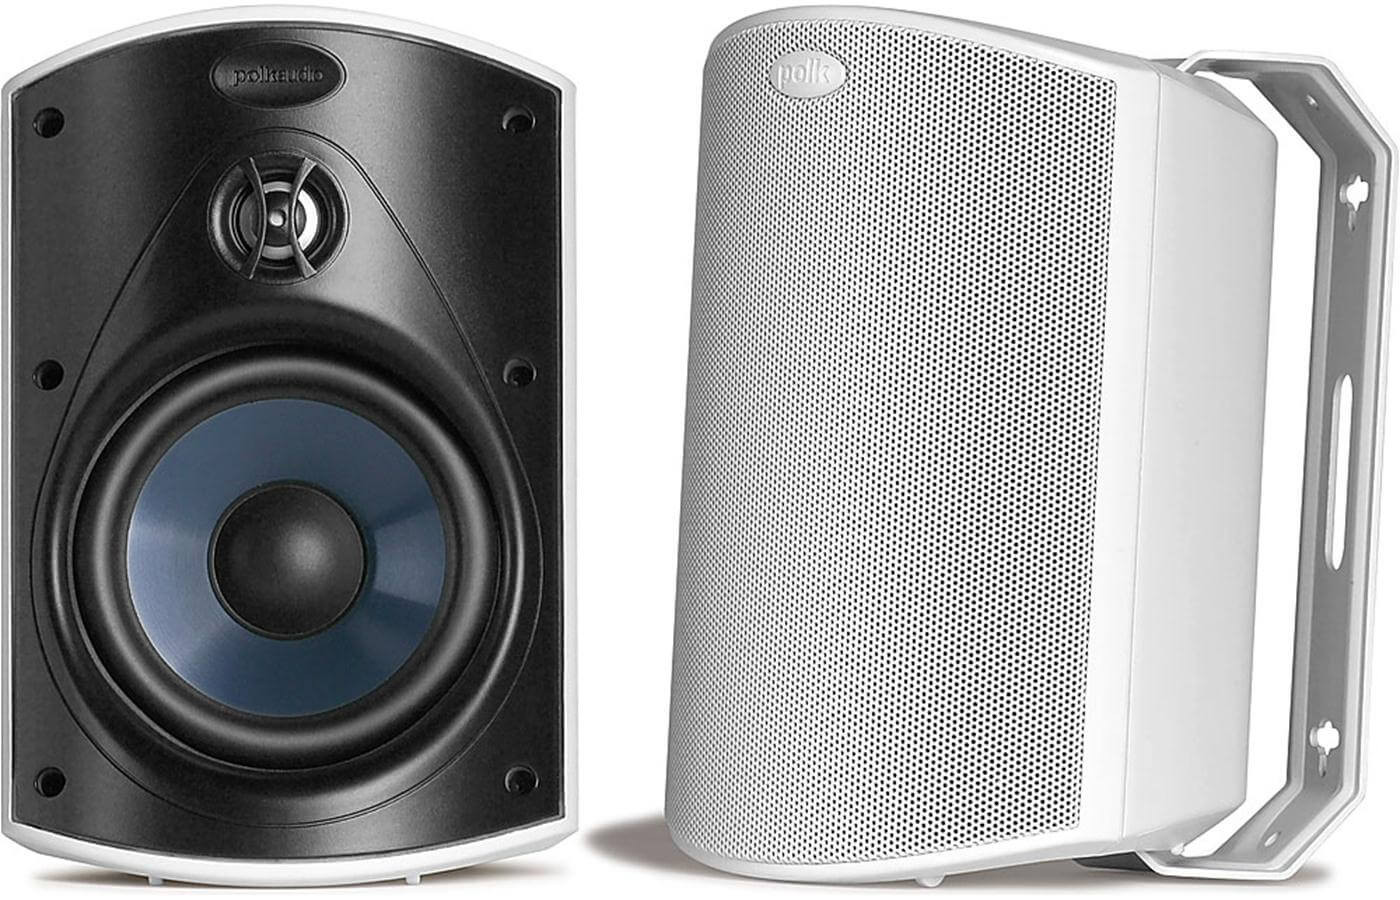 Best ideas about Best Outdoor Speakers . Save or Pin The Best Rated Outdoor Speakers Reactual Now.